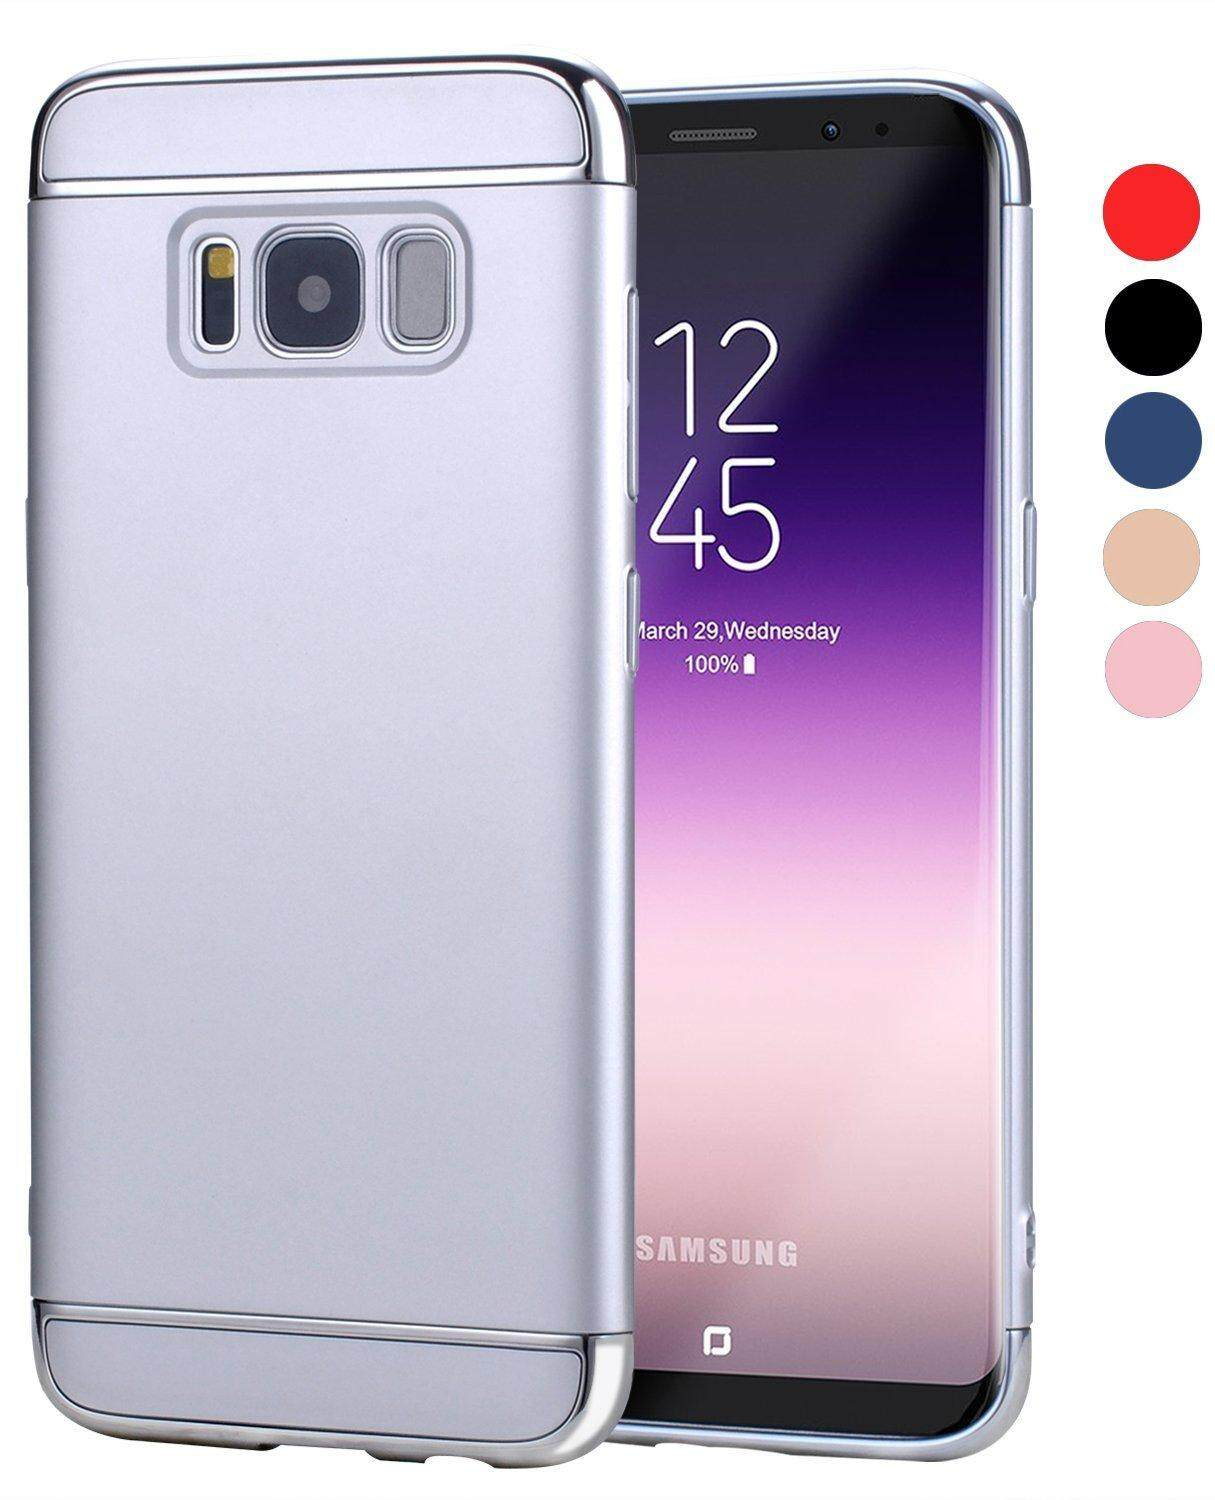 ... casing for Samsung Galaxy S8 Mixed Colorful antioxidant cover housing - intlPHP277. PHP 280